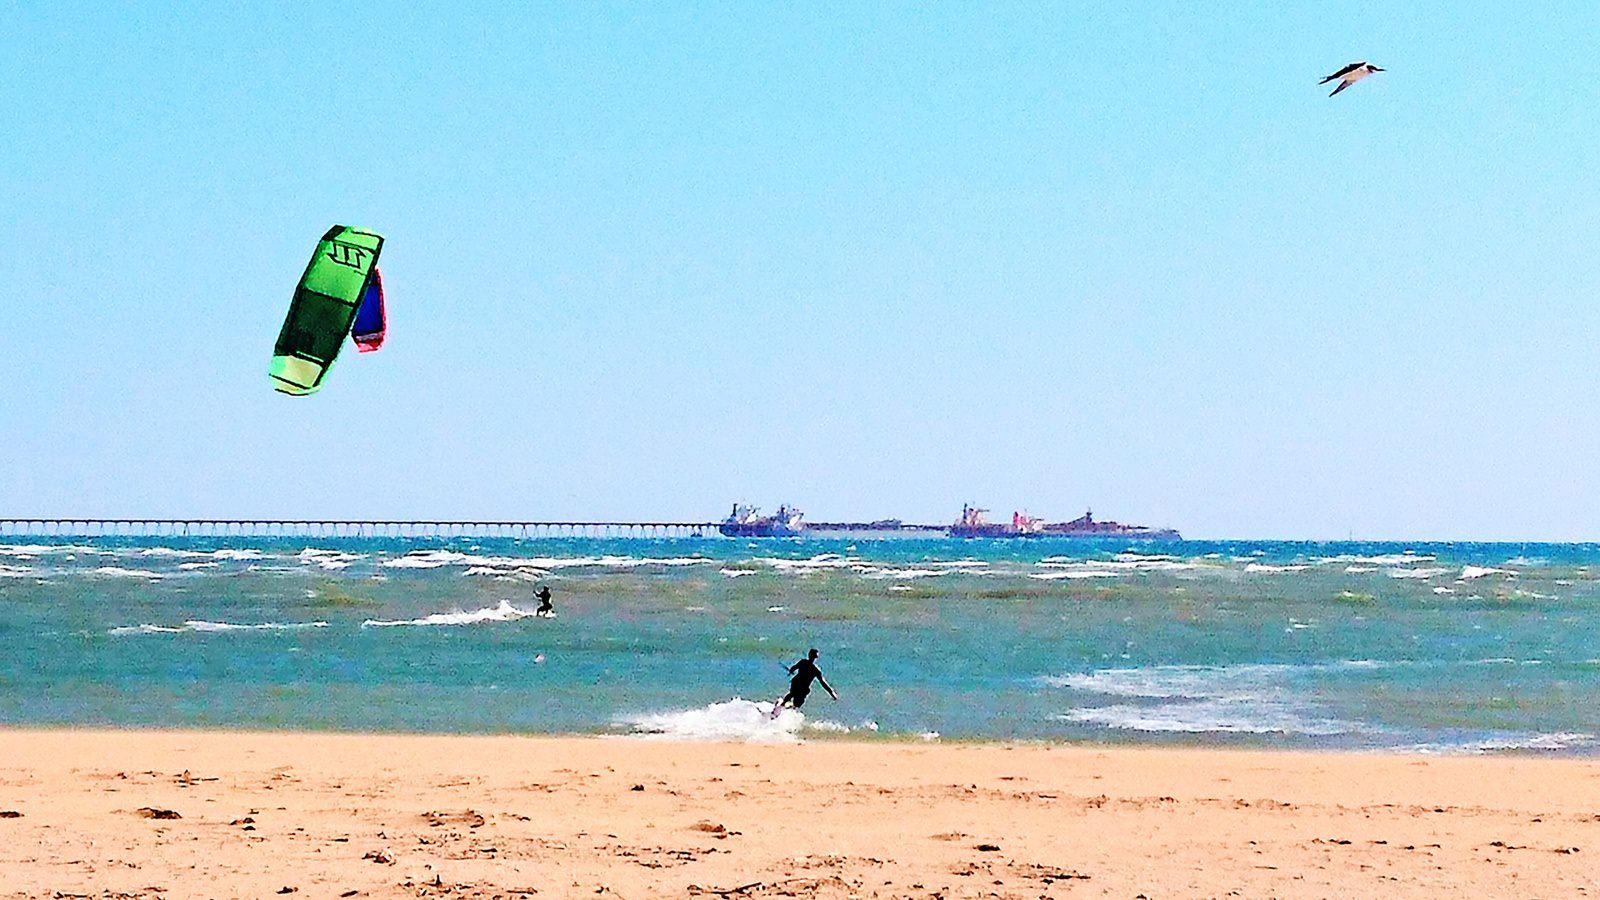 Windsurfing in Port Samson, Western Australia